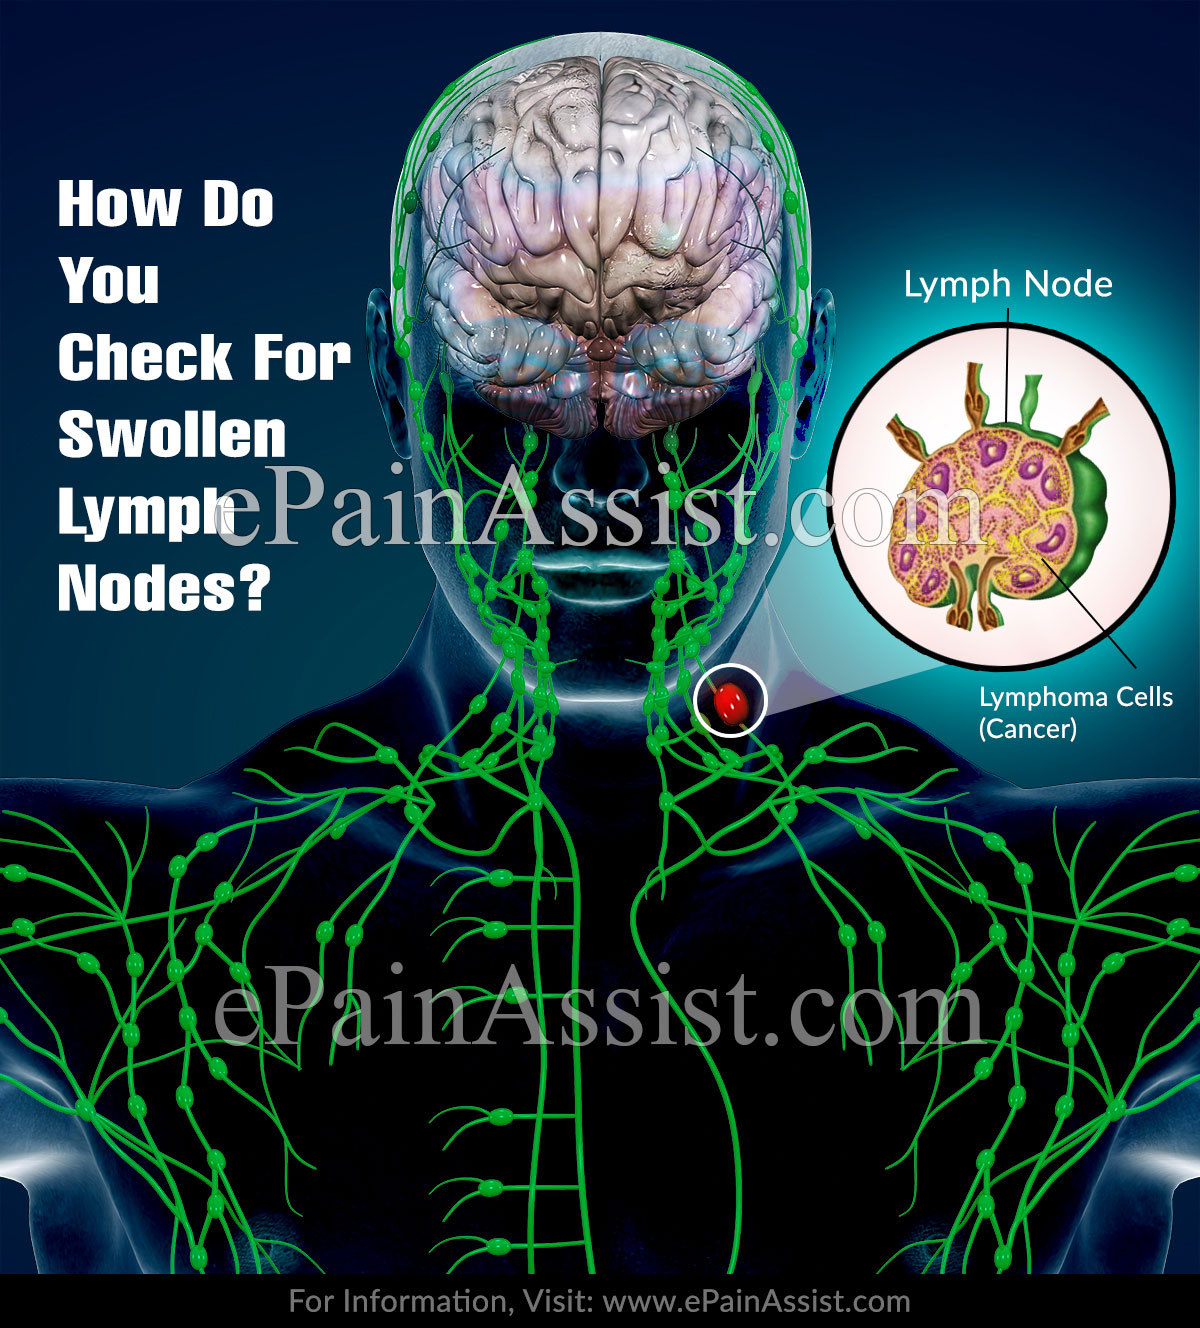 How Do You Check For Swollen Lymph Nodes?